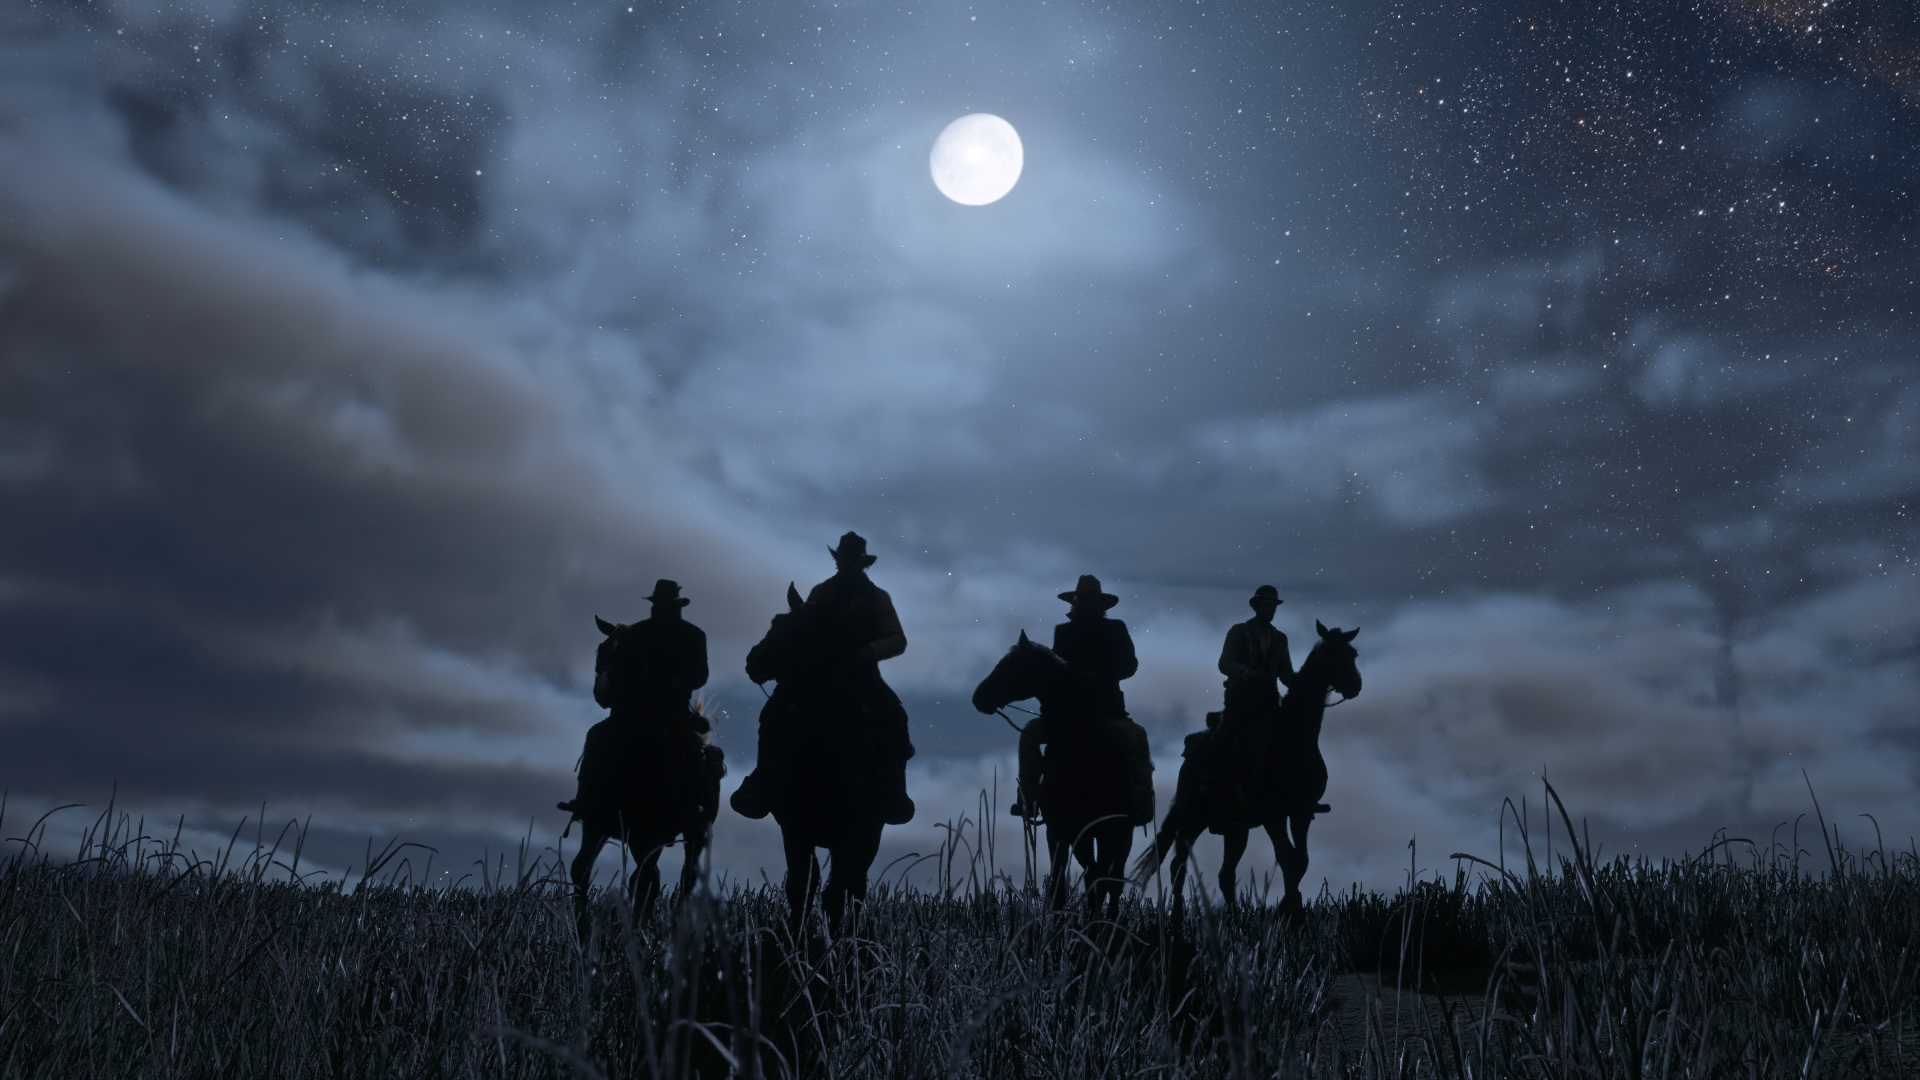 Red Dead Redemption 2 - Main Protagonist Screenshot 2